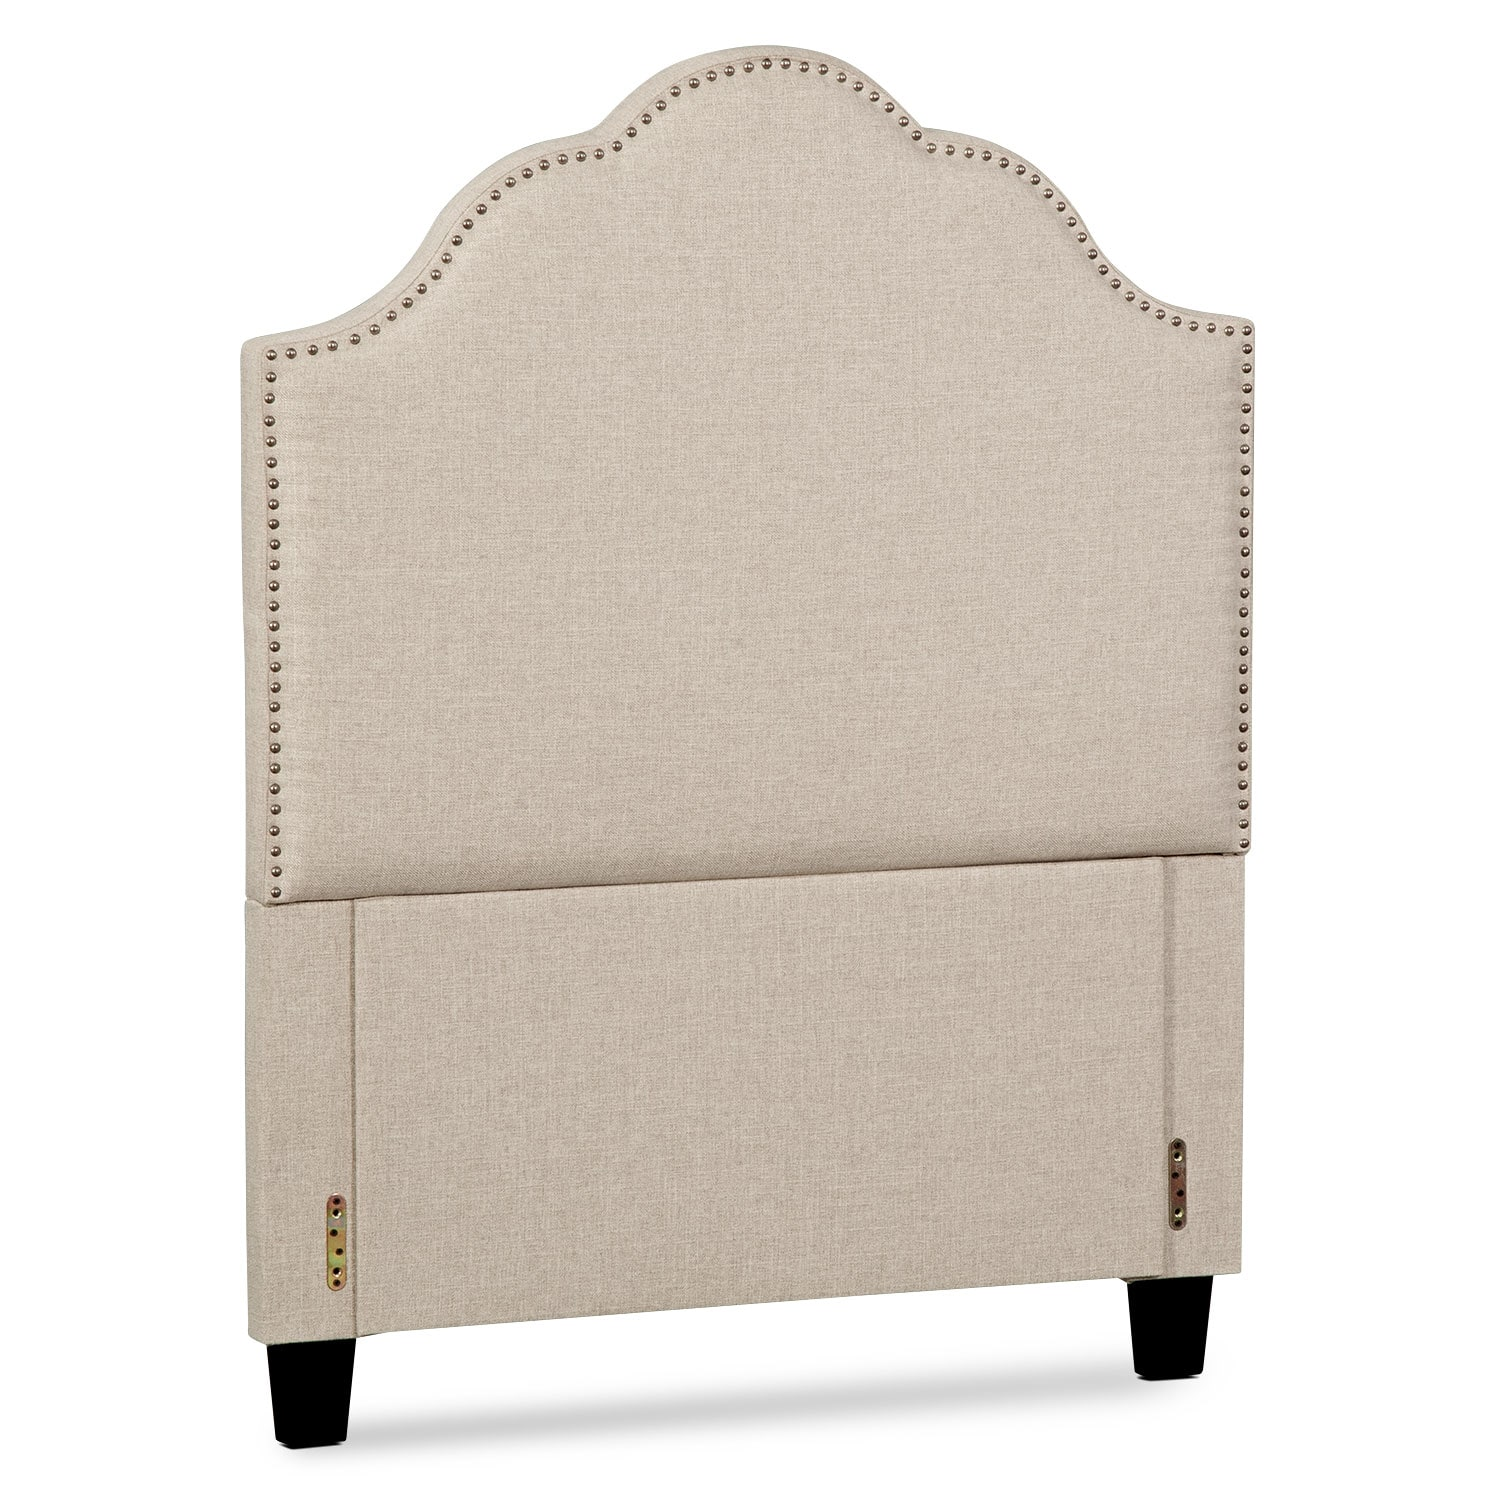 Bedroom Furniture - Maya Twin Upholstered Headboard - Beige